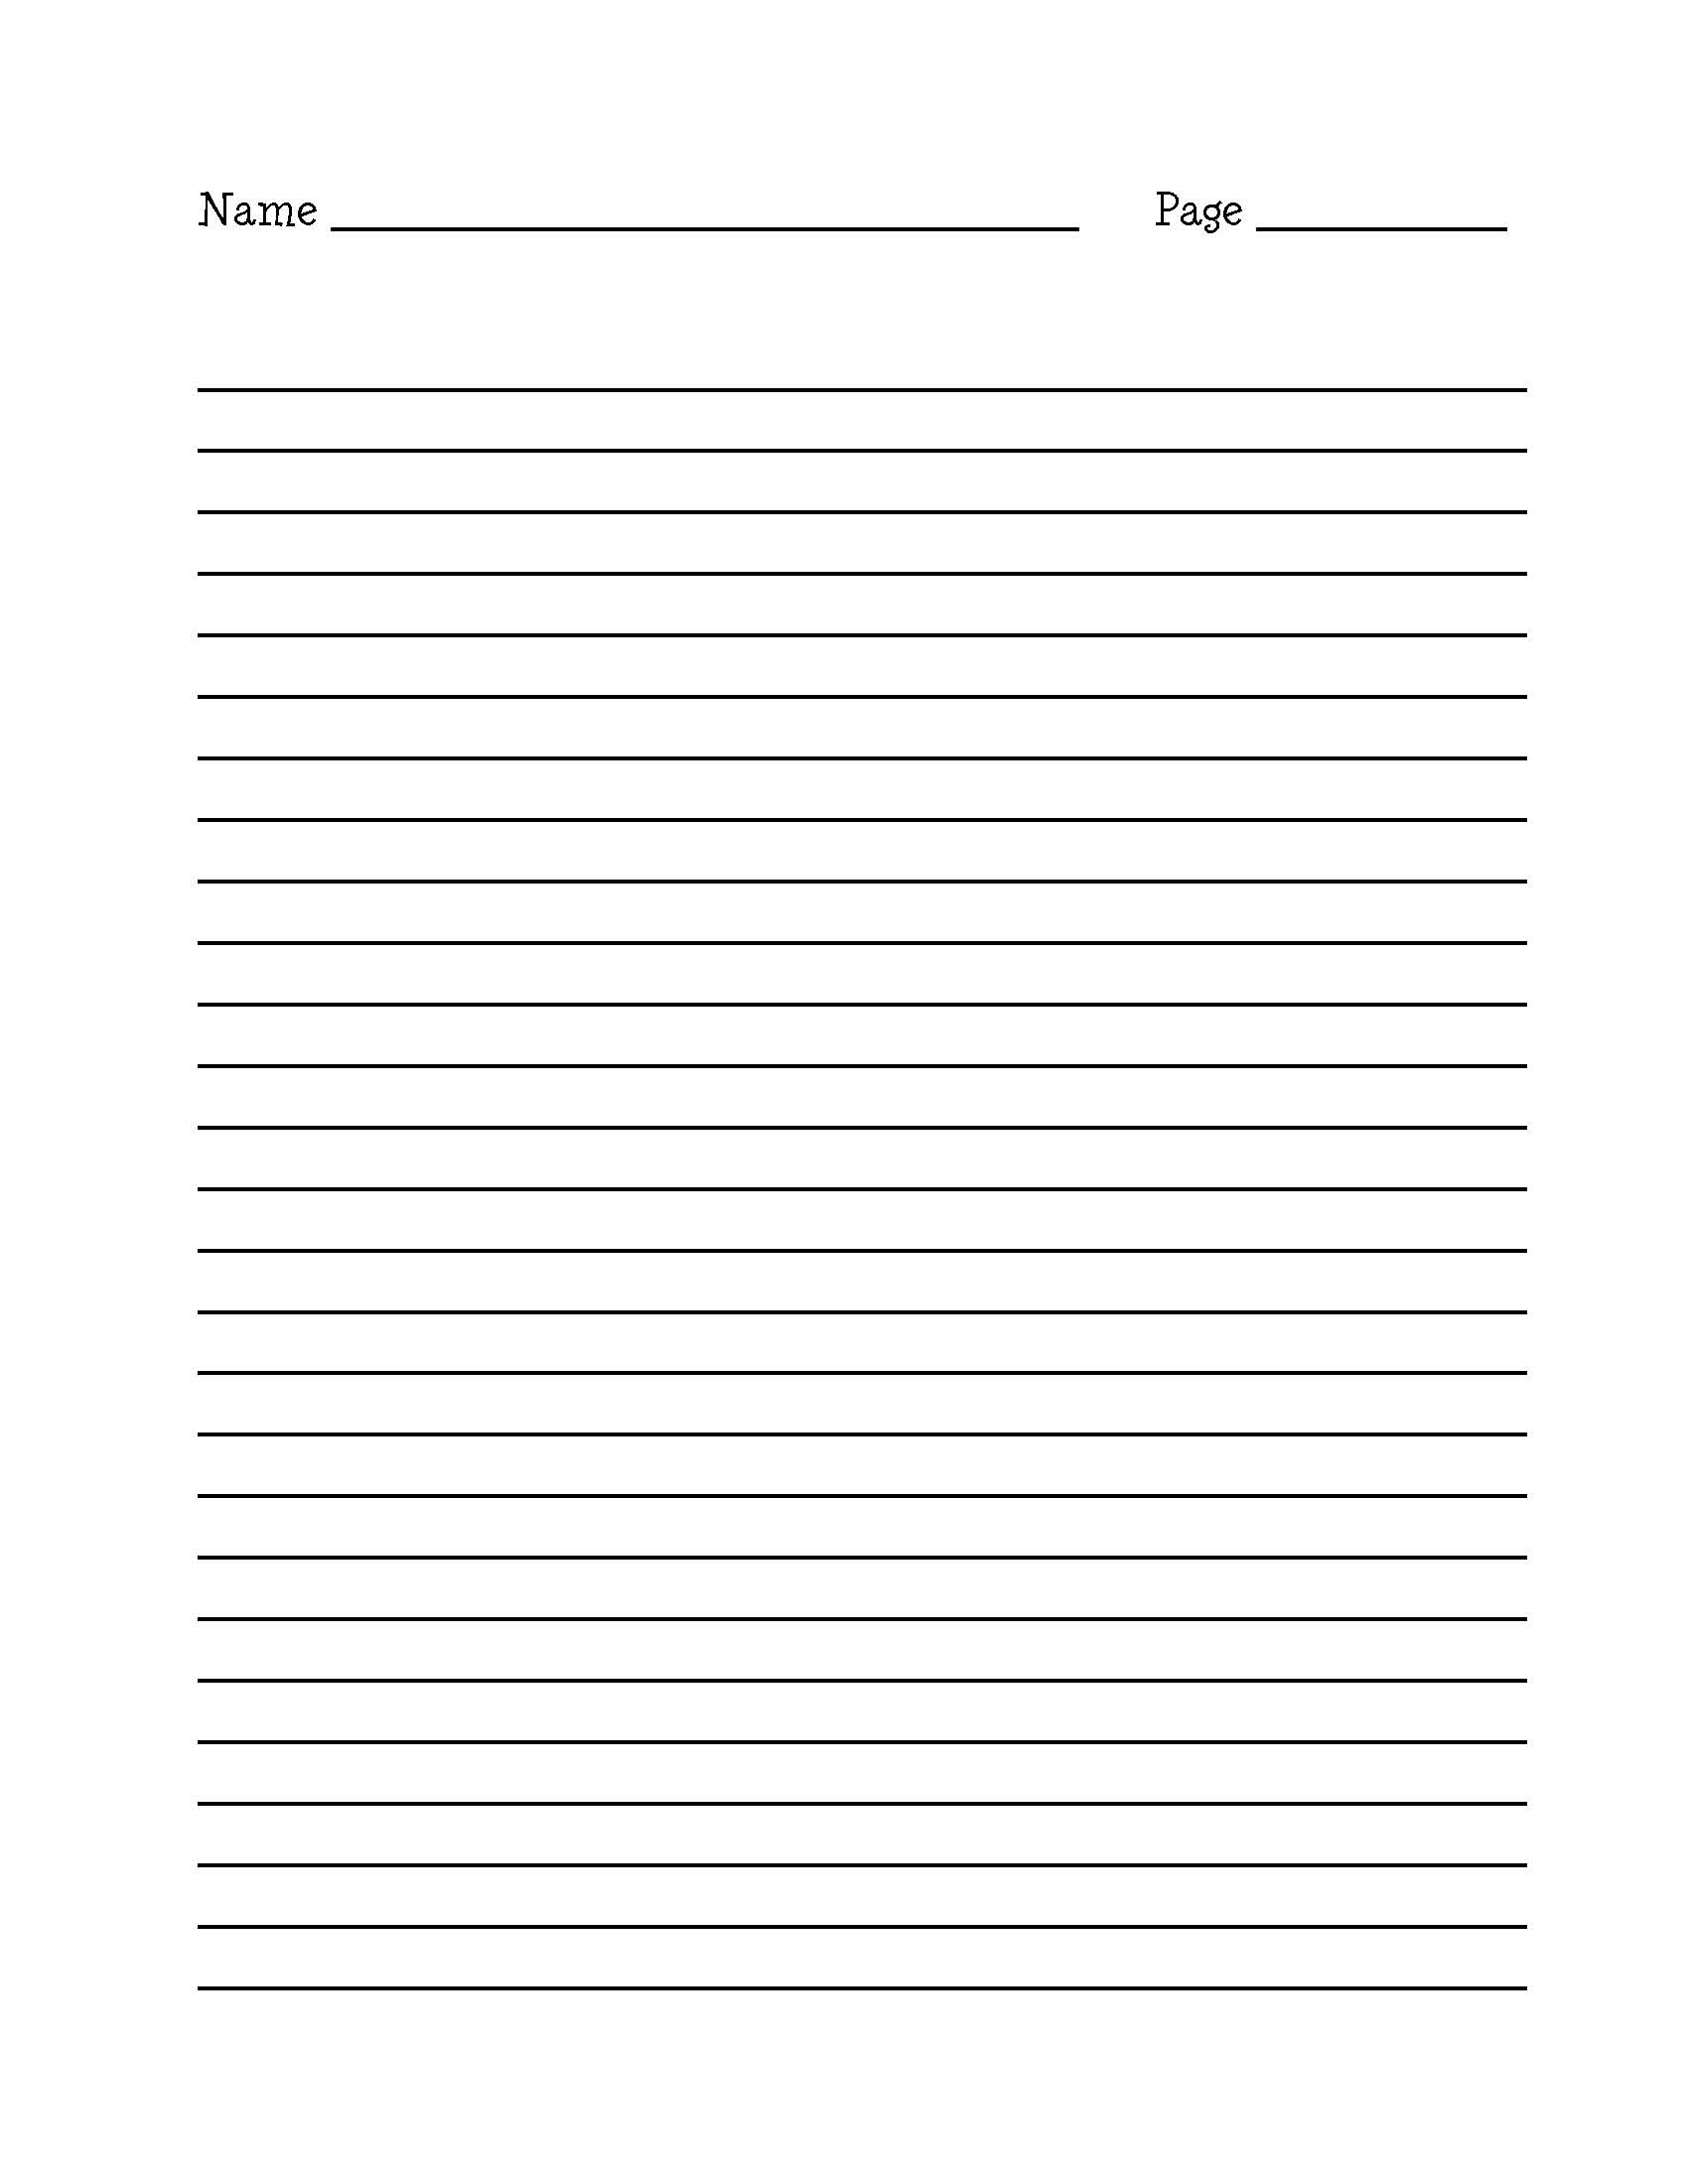 School Themed Lined Writing Paper: School Themed, Lined, Writing Paper Can  Make You Love Telling You All Their Ideas And Dreams For This Very Special  Year!  Lined Chart Paper